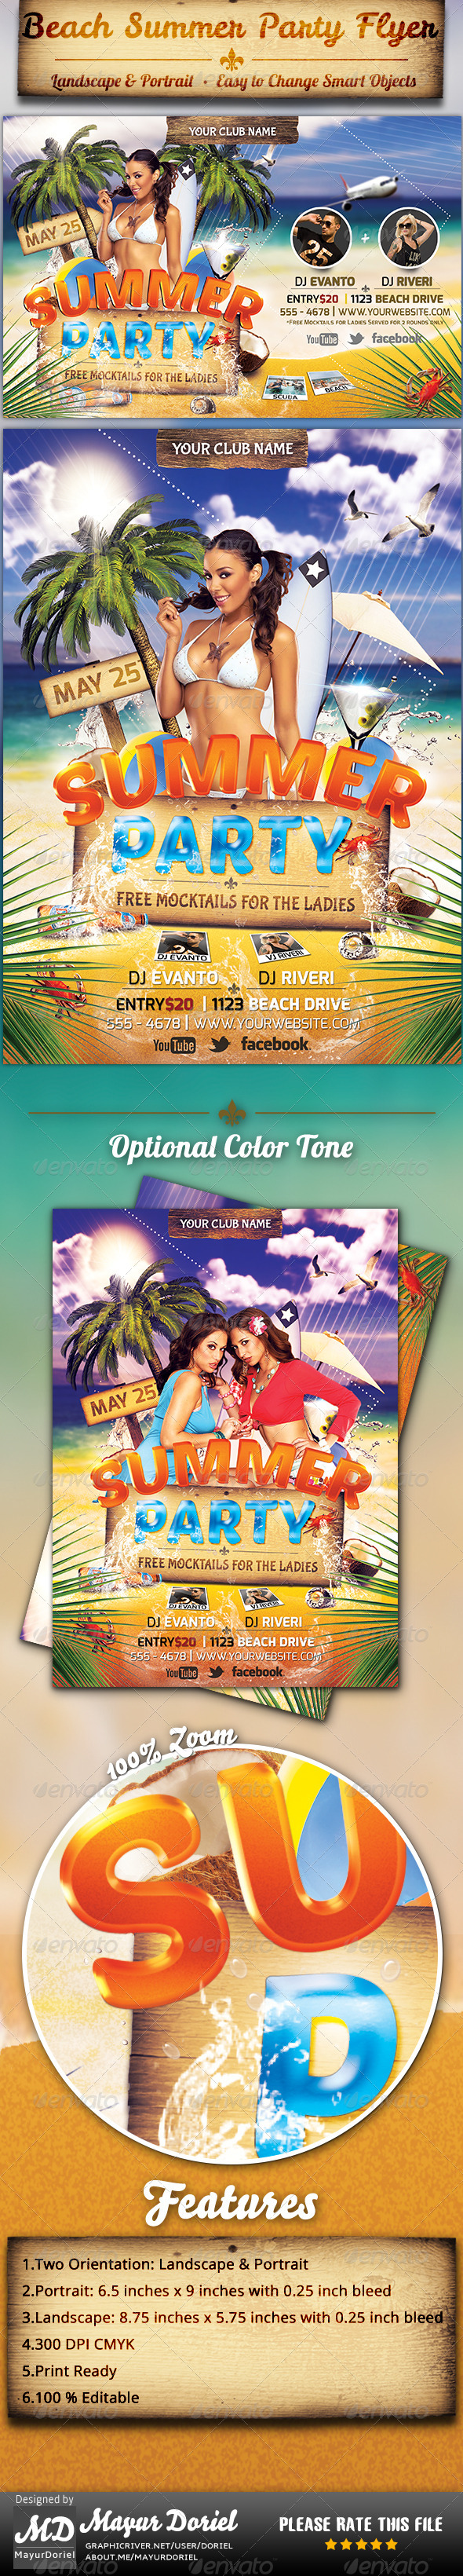 Beach Summer Party Flyer Template - Clubs & Parties Events